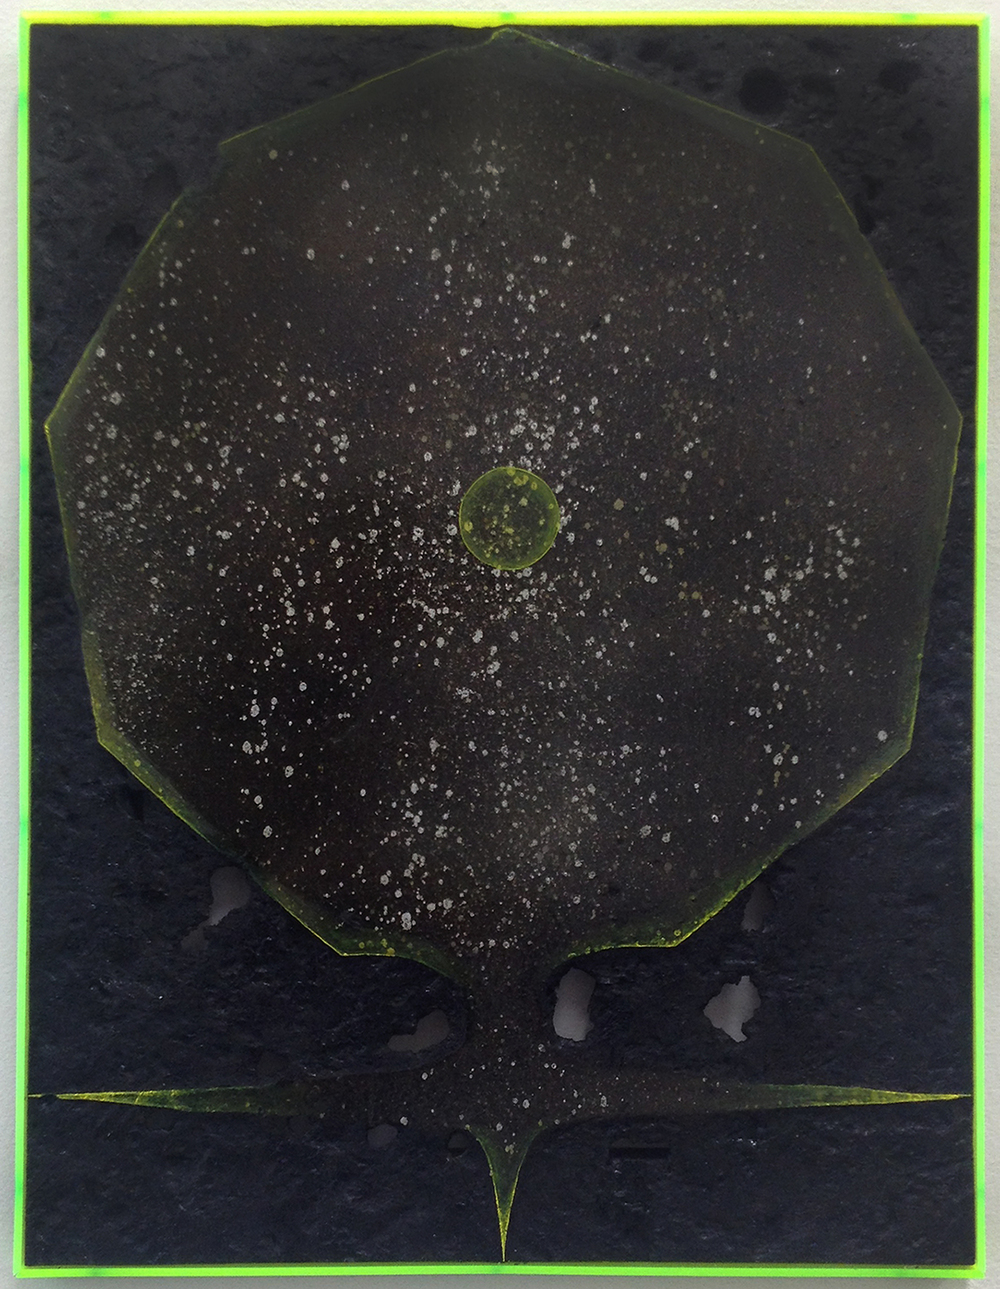 Davide Zucco ,  Black shape #2 , 2016, spray paint, pigment, burns, varnish, oil paint, plexiglass on wood, 18 x 14 inches